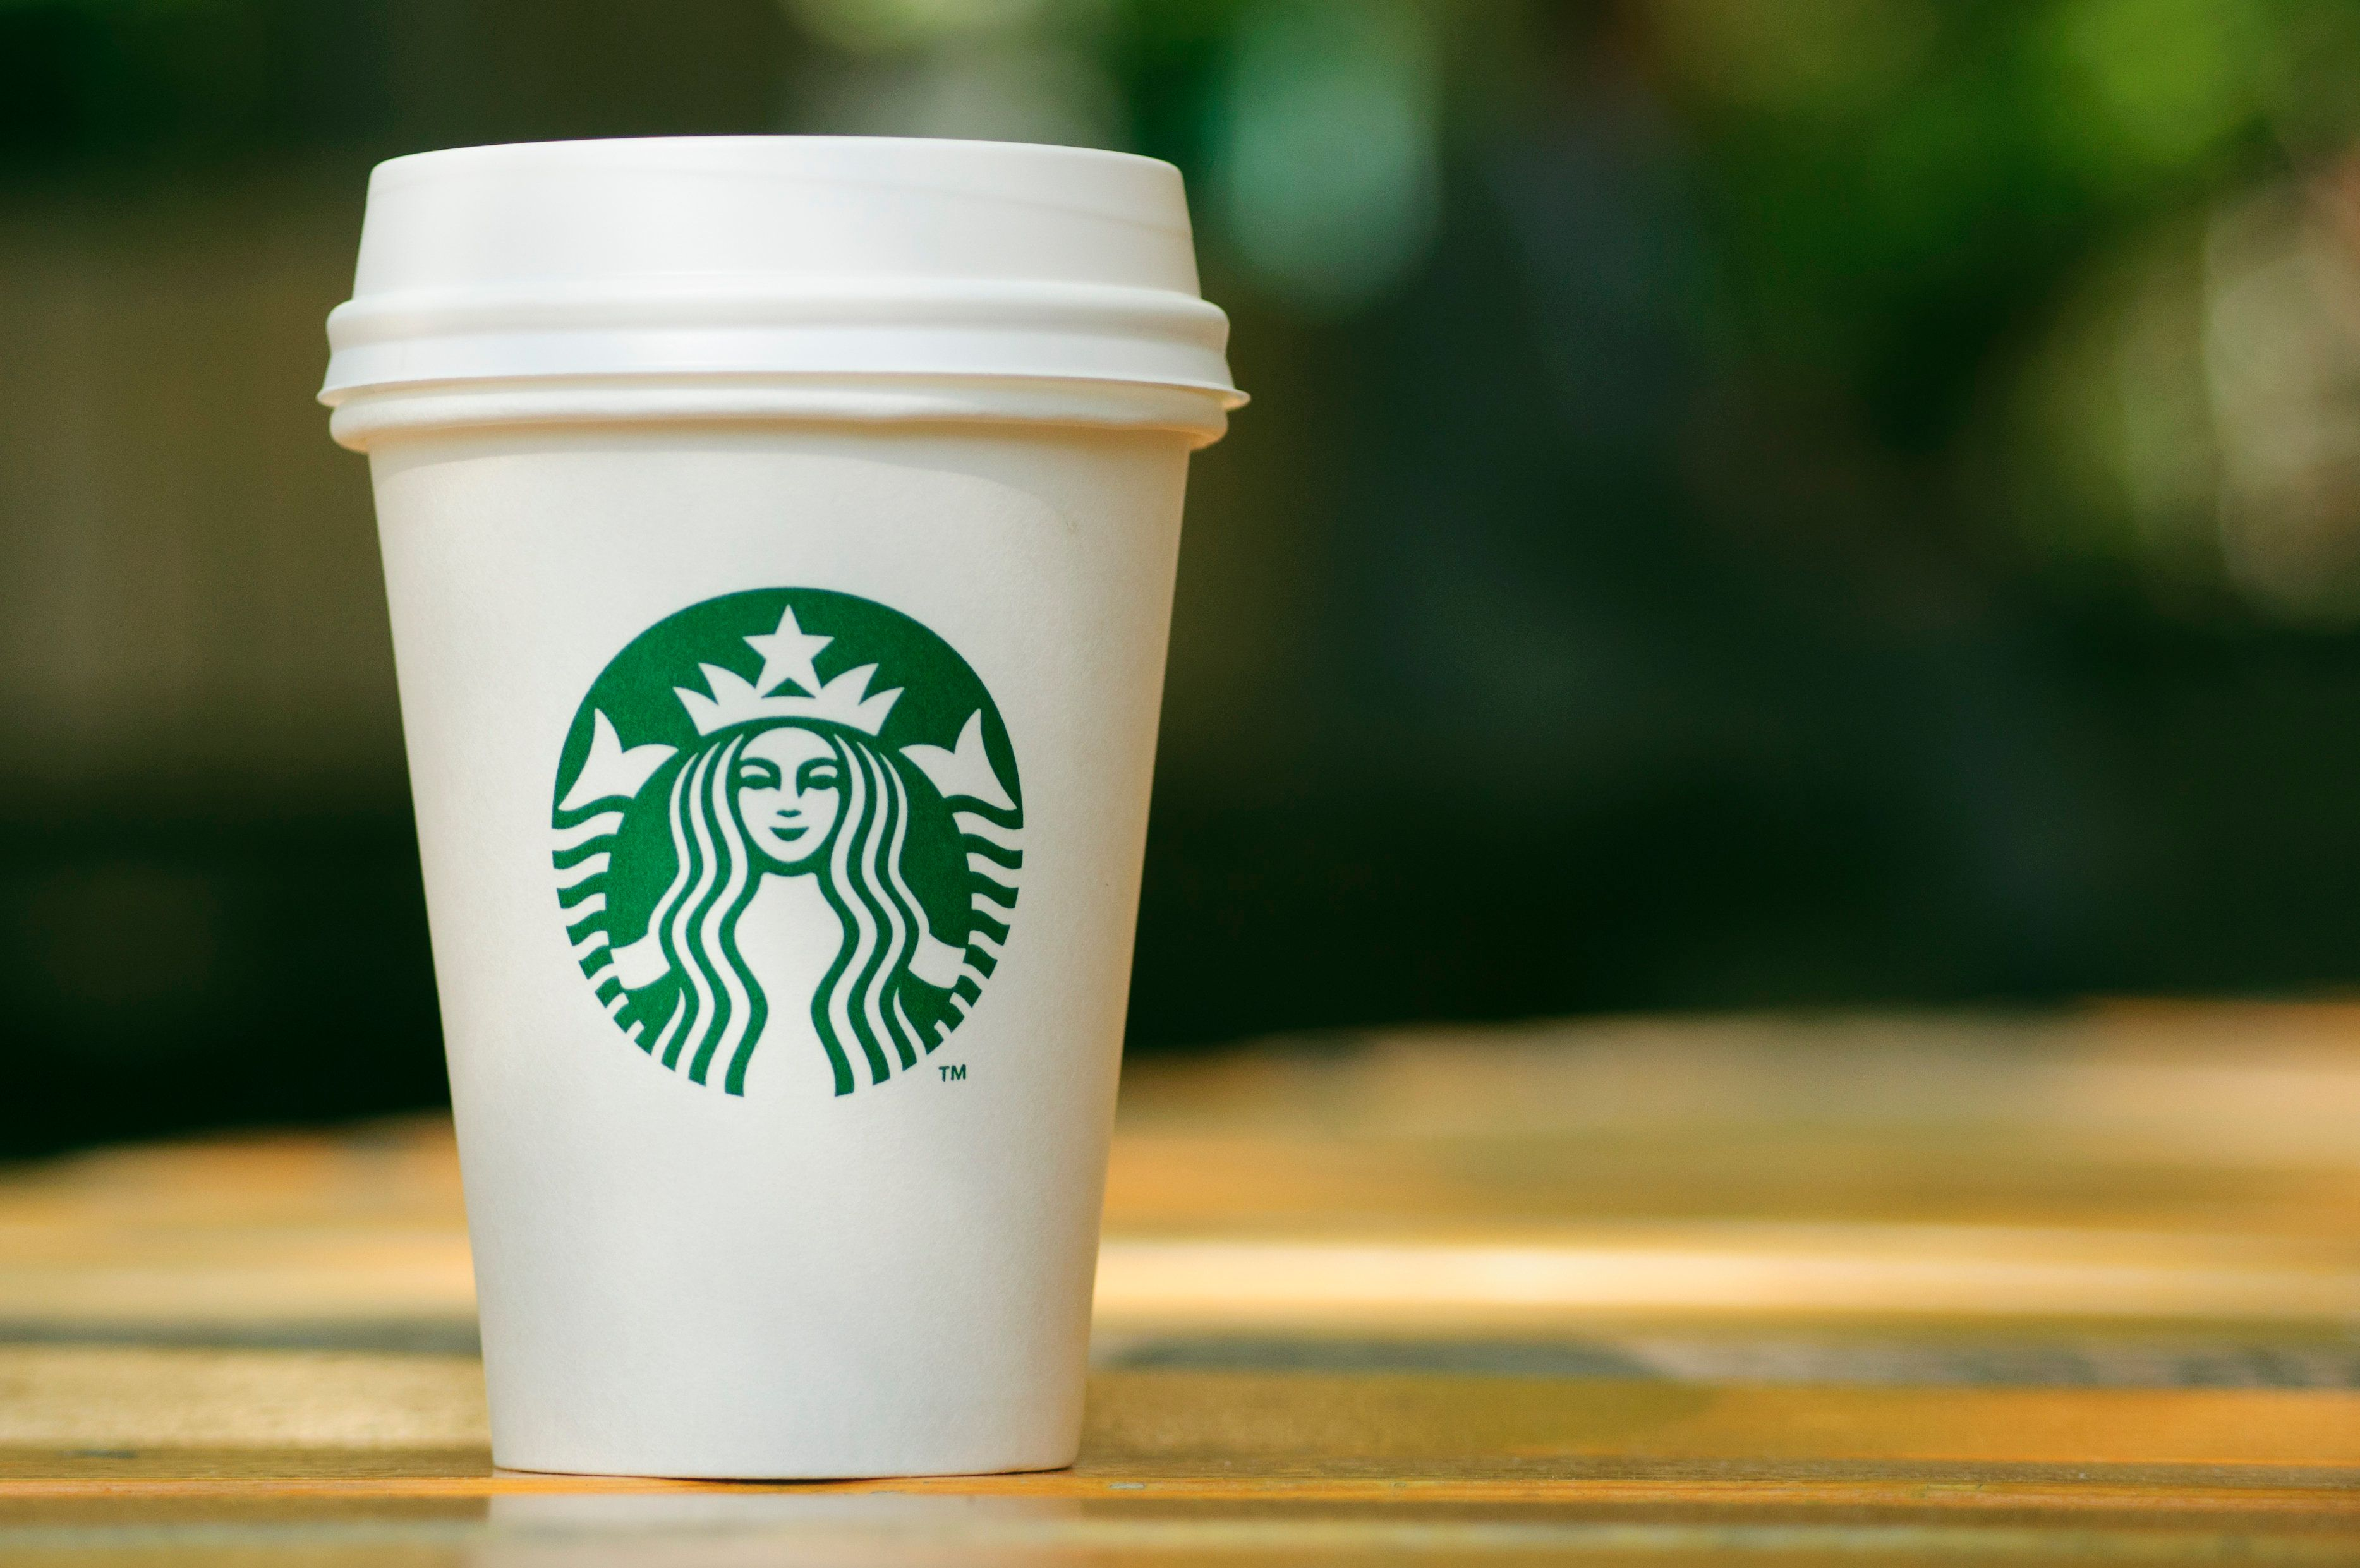 Tall Starbucks to go cup on wooden table